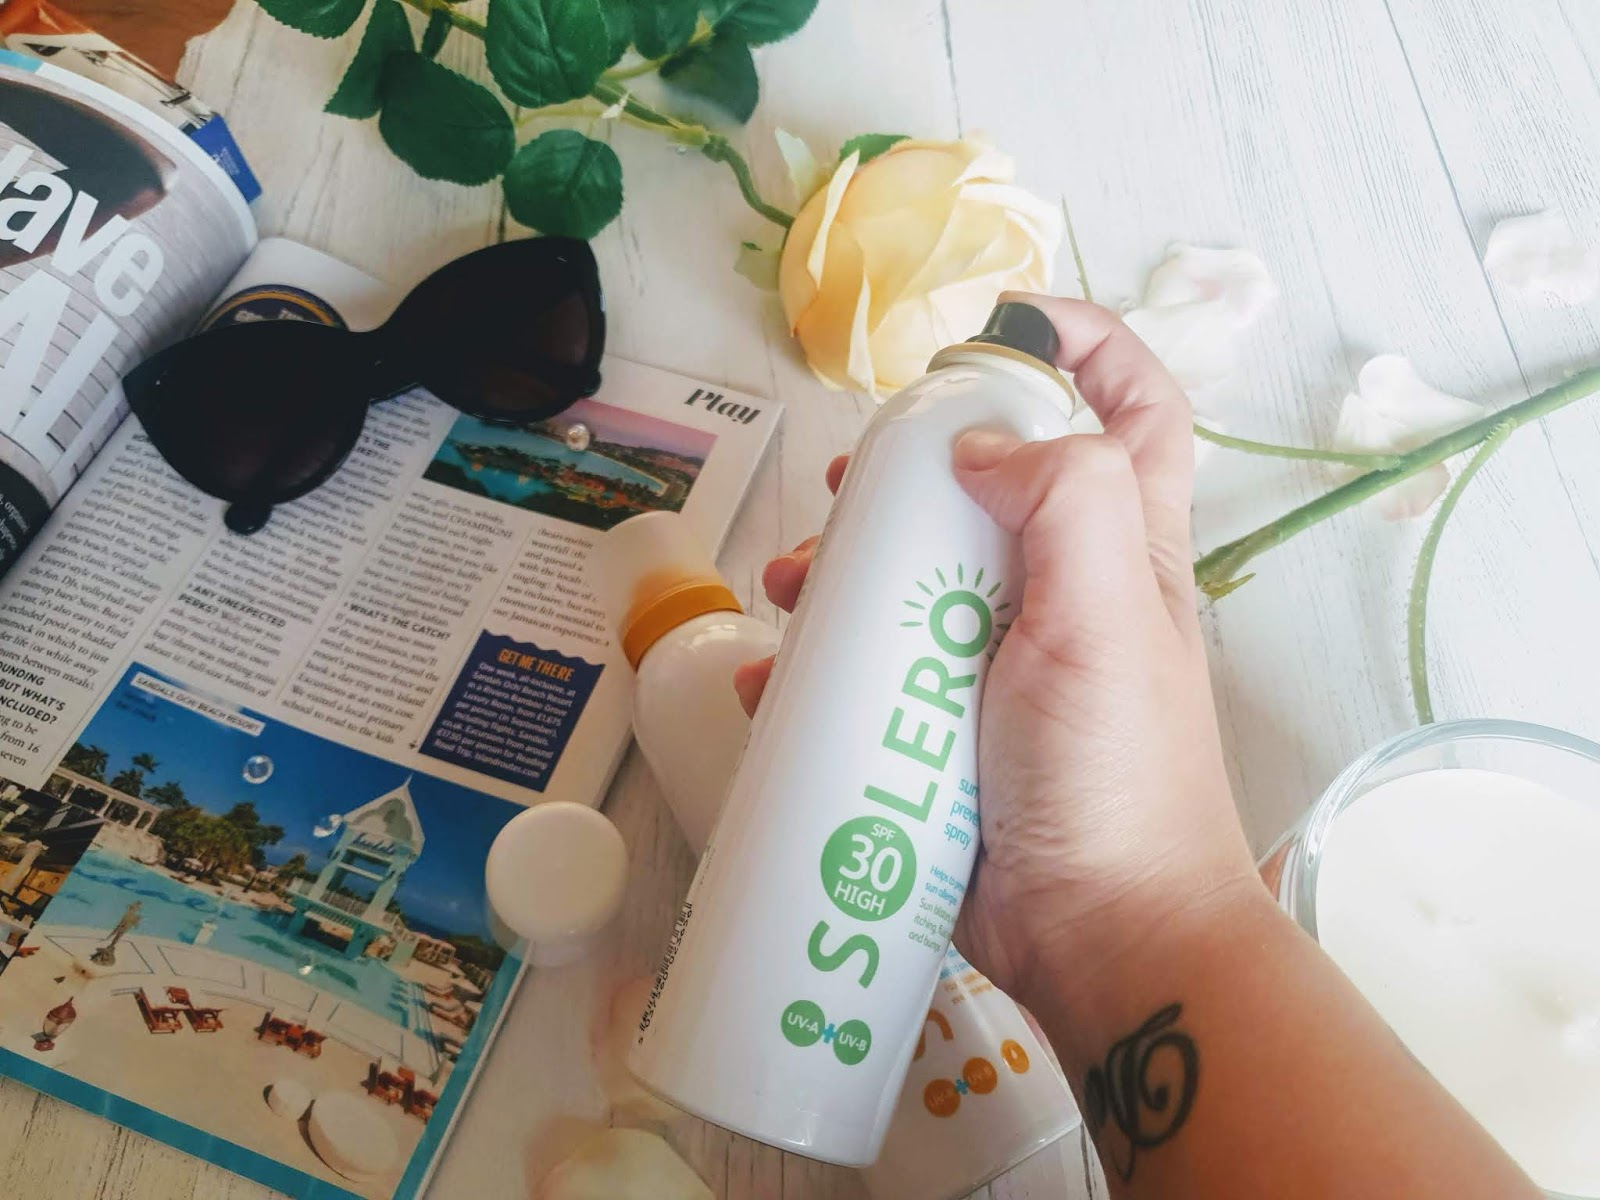 Suncare with LloydsPharmacy Solero